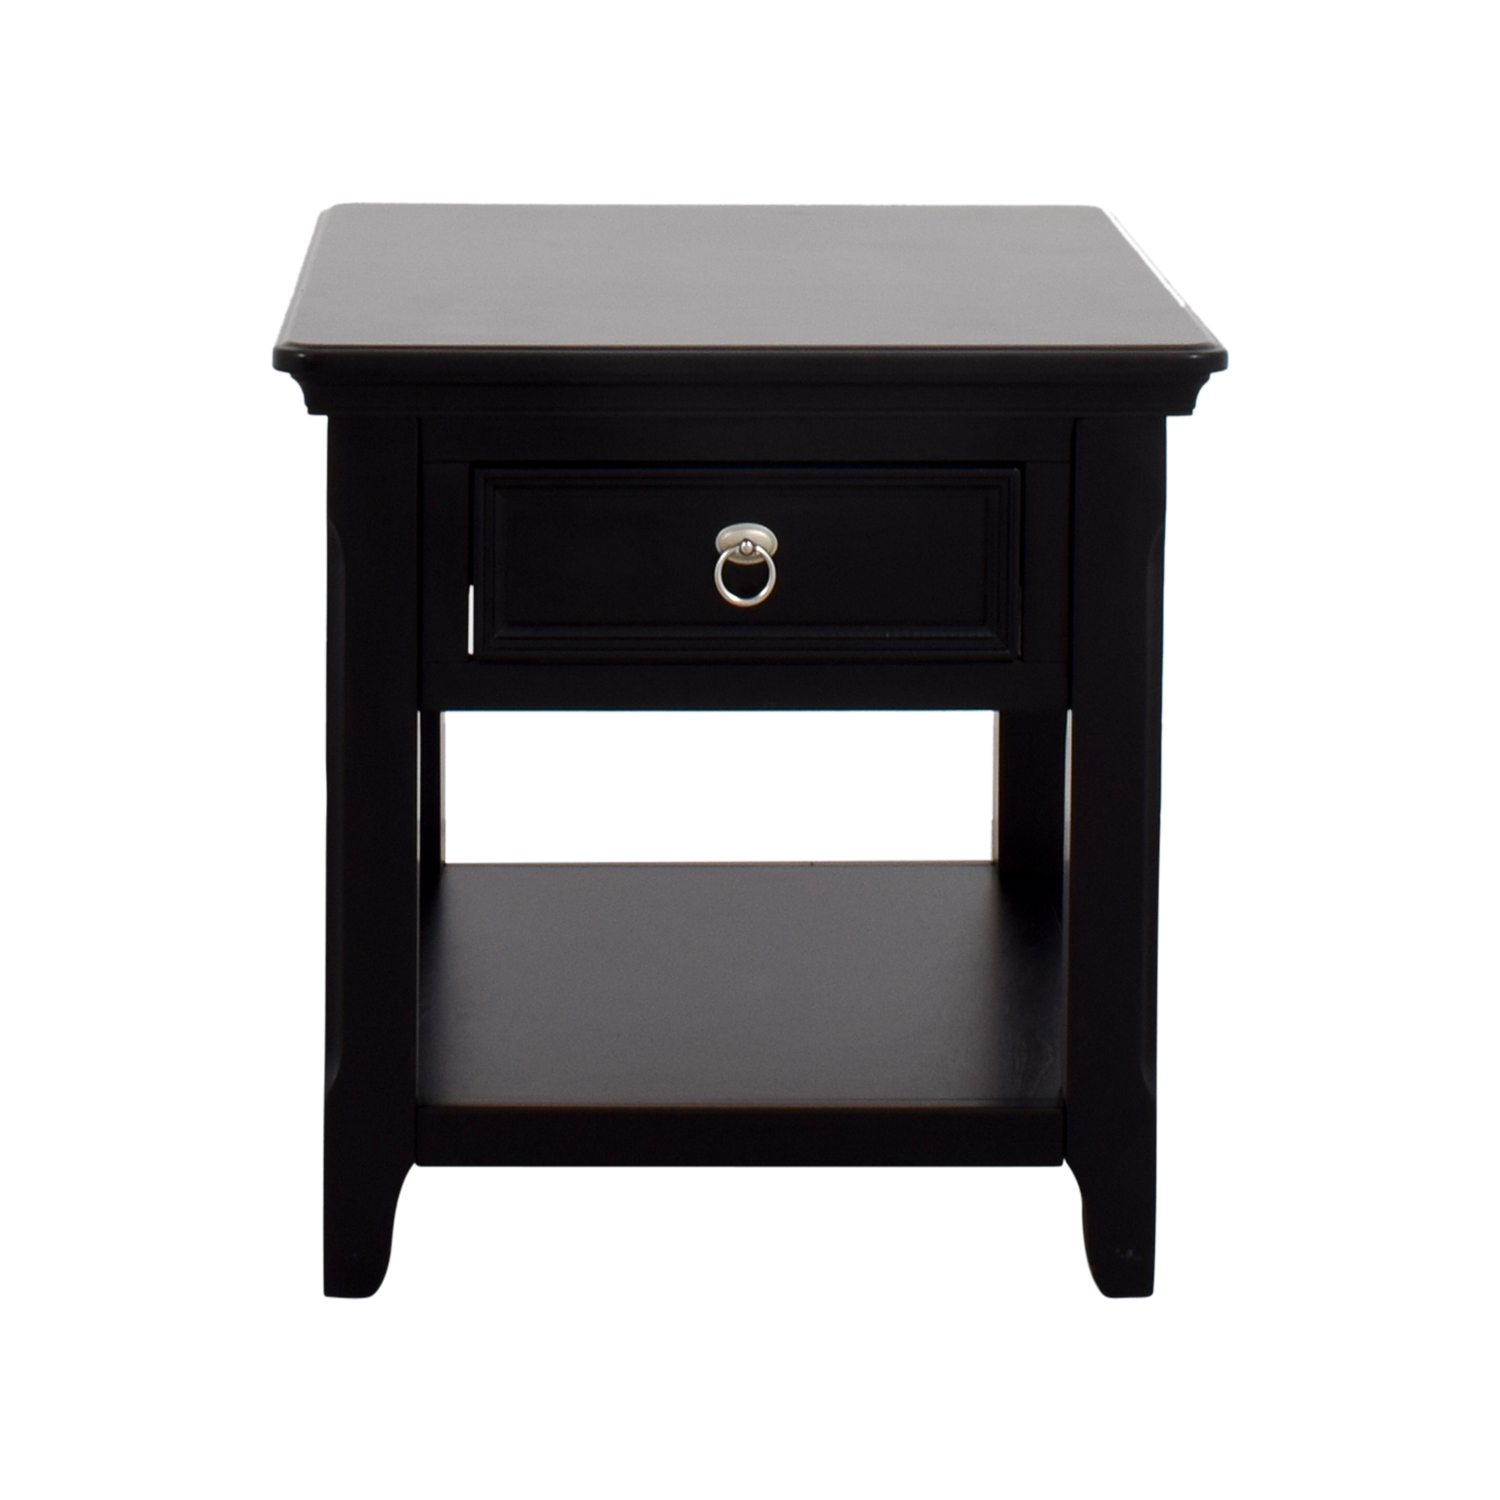 Ashley Furniture Rectangular End Table / End Tables